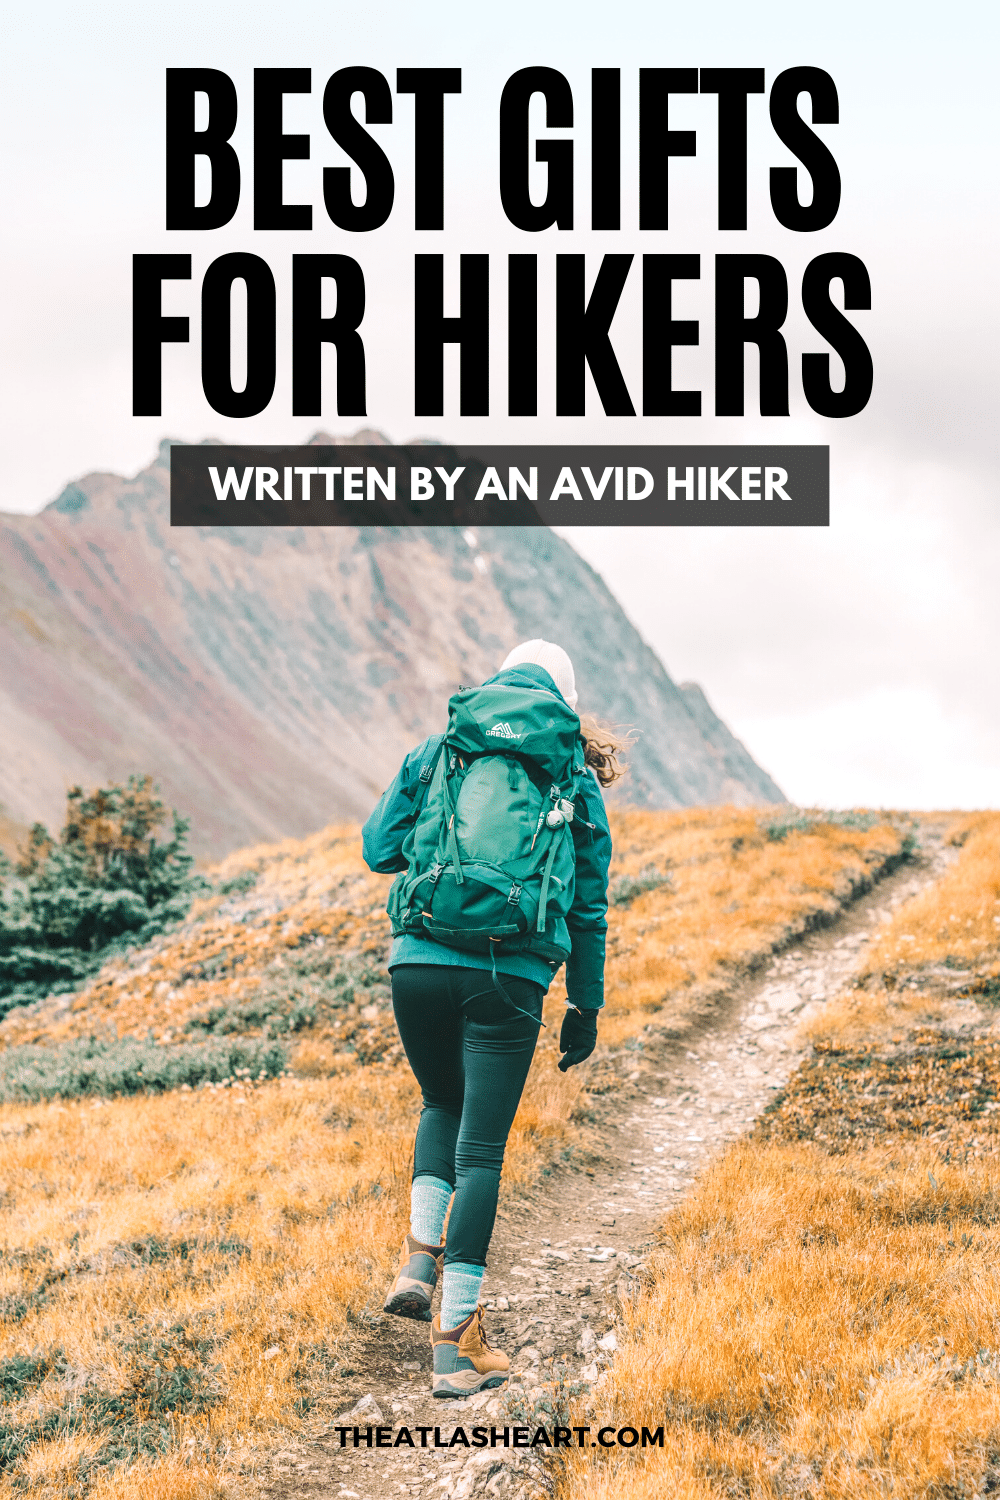 70+ Best Gifts for Hikers (Written by an Avid Hiker) | 2021 Gift Guide